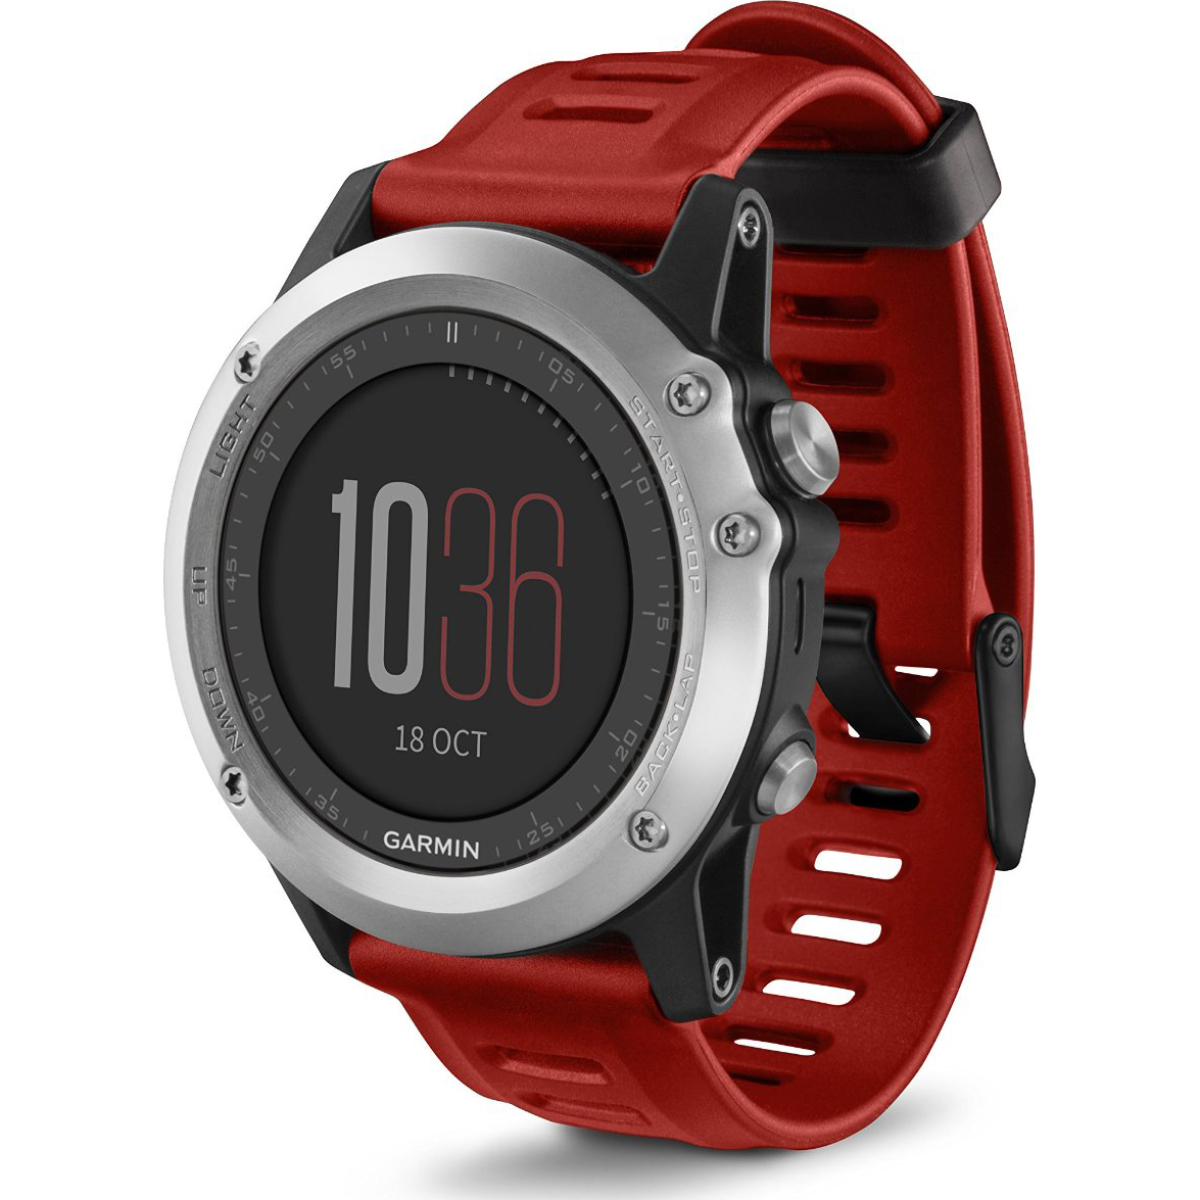 Garmin fenix 3 Multisport Training GPS Watch - Silver with Red Band